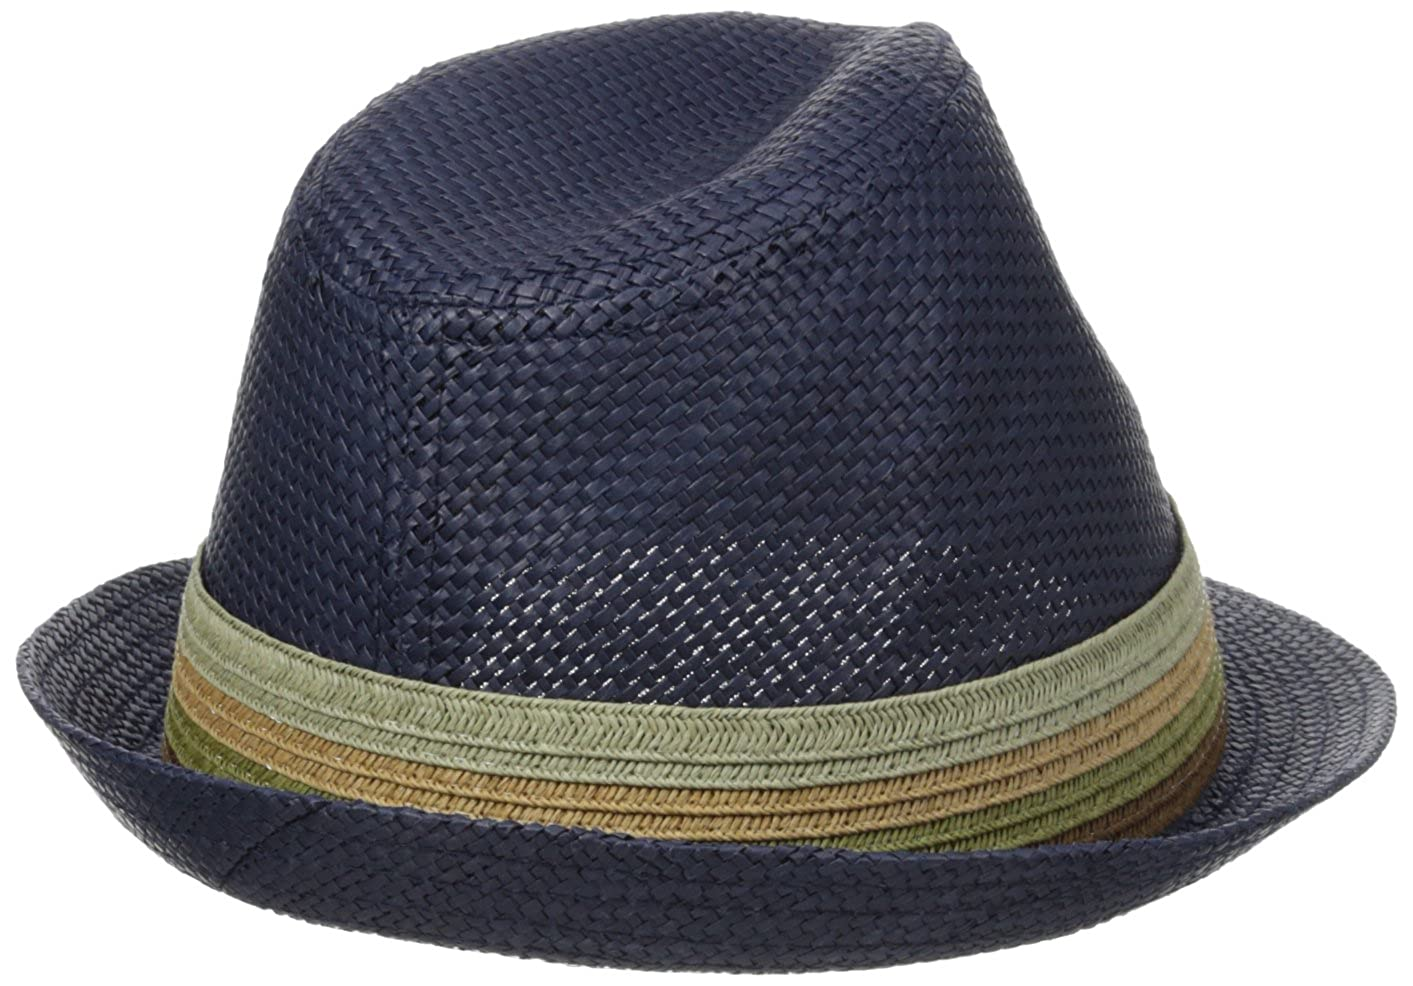 Perry Ellis Mens Braid Band Straw Fedora